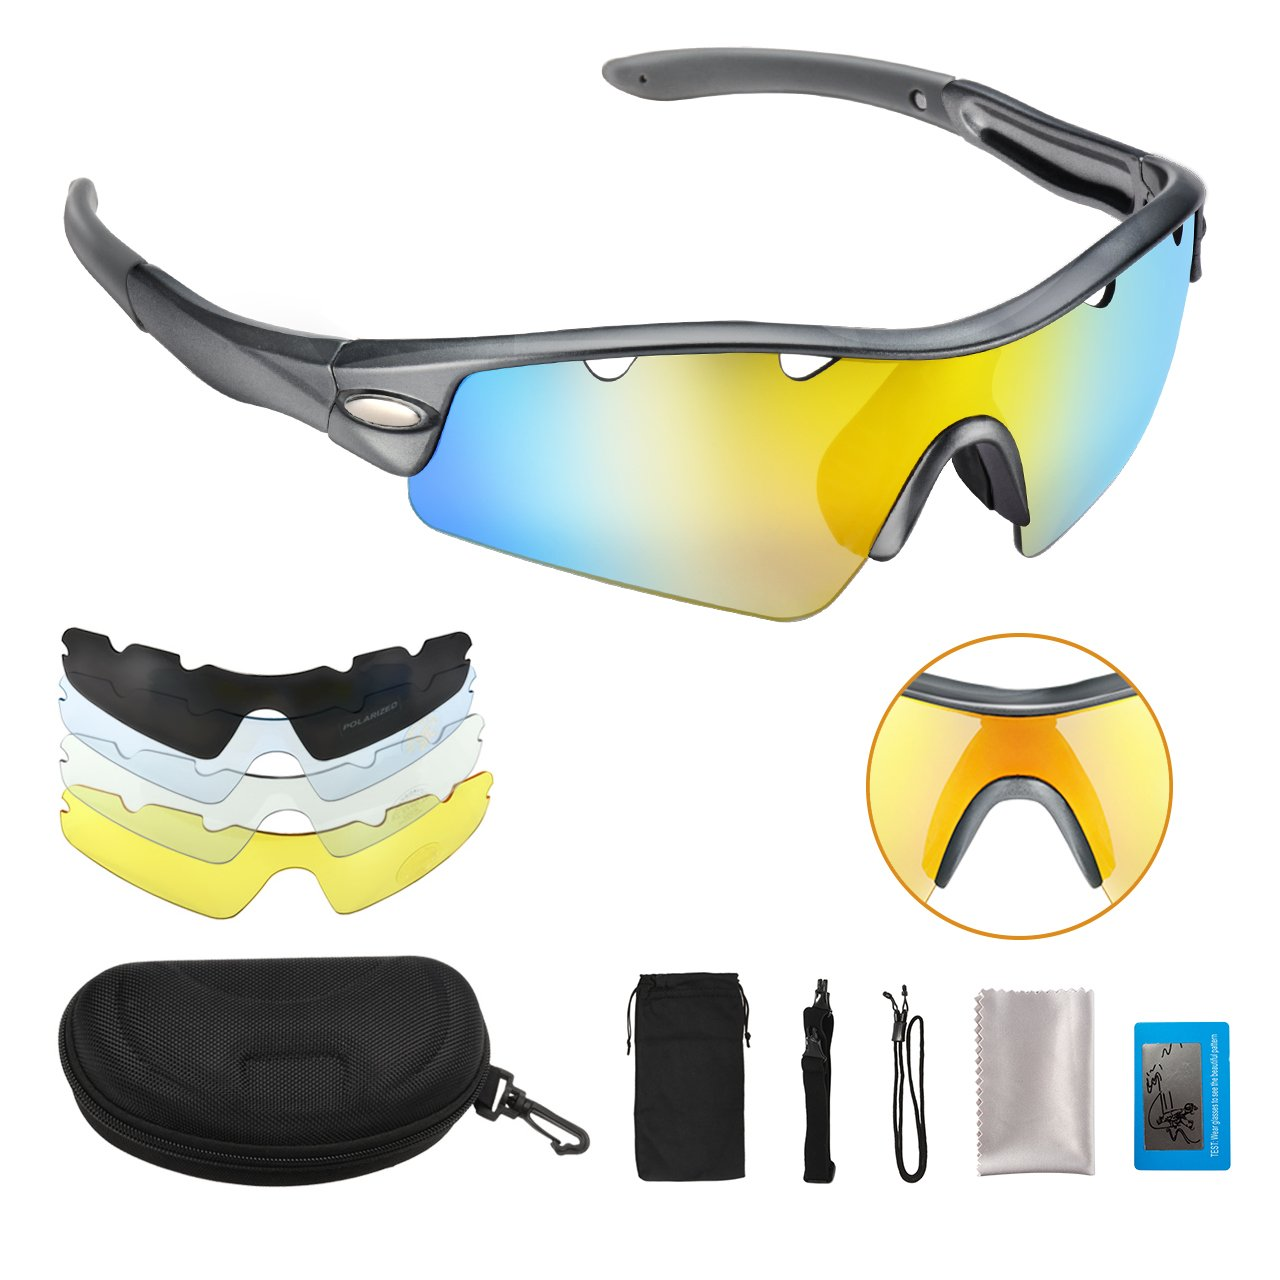 45c0bbc313f7 Get Quotations · OMorc Polarized Sunglasses with 5 Interchangeable Lenses  (1 Polarized Sunglass and 4 Common Sunglasses)